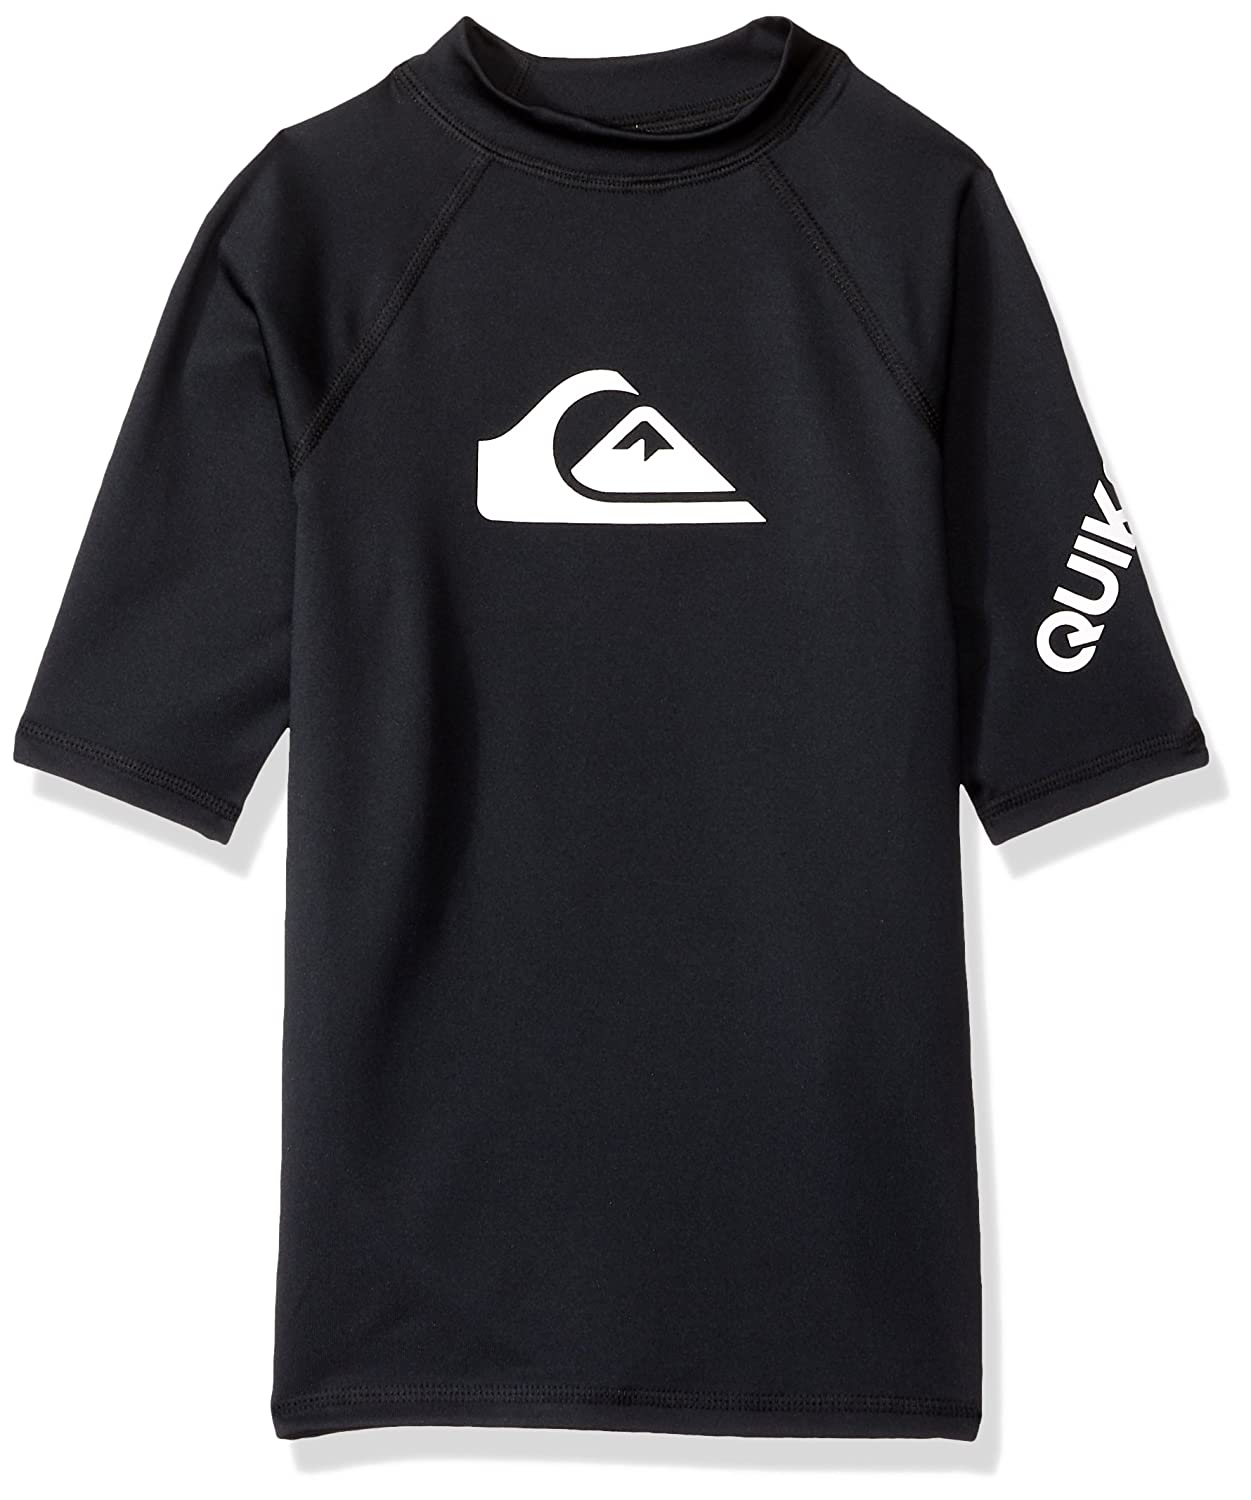 Quiksilver Boys All Time Short Sleeve Youth Black Surfing Rashguard Size L-14 B0794XTGGZ